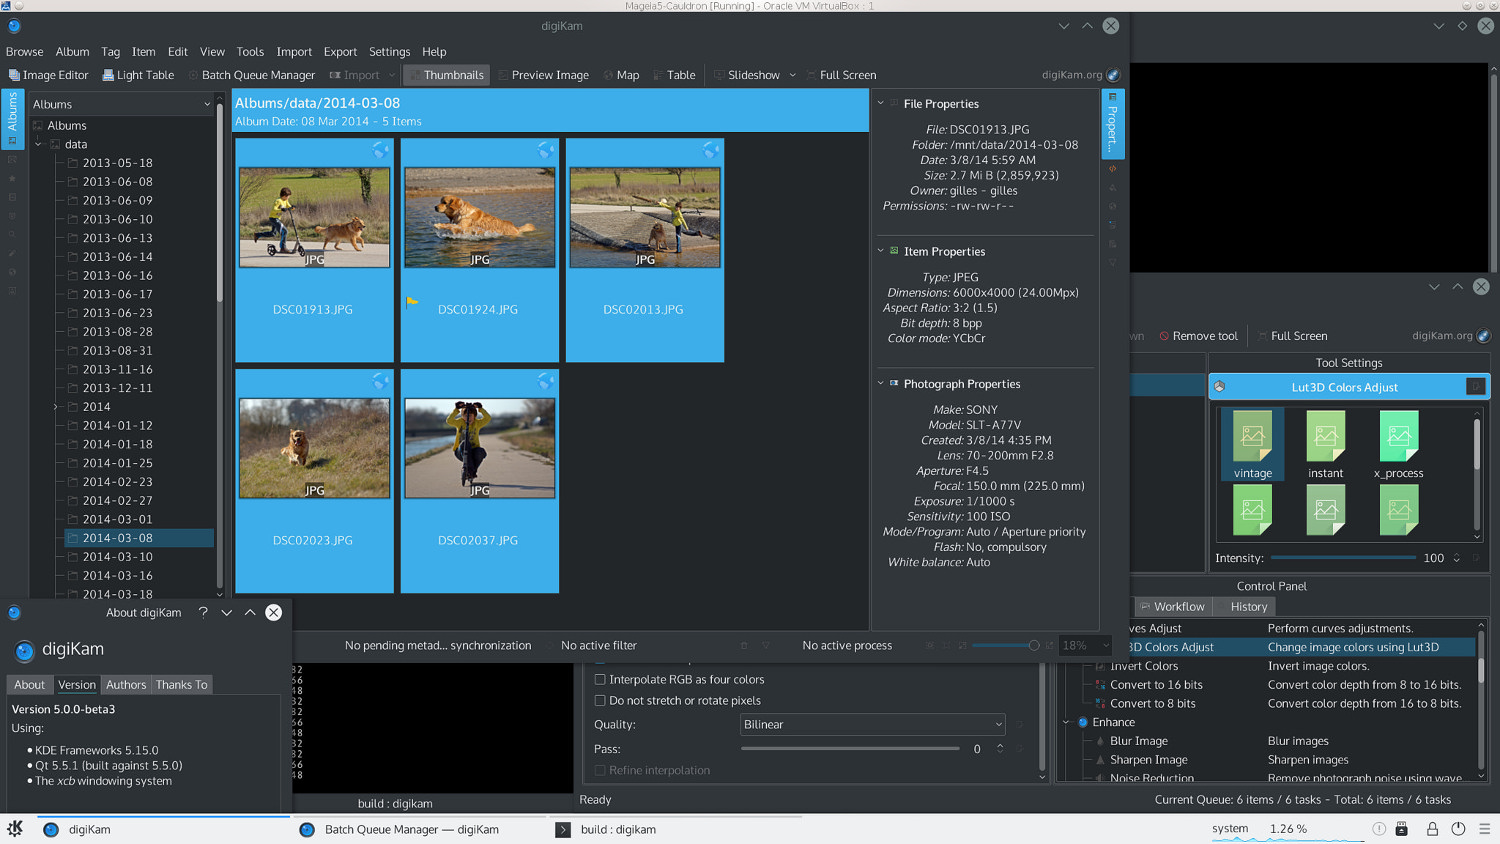 digiKam 5.0.0-beta3 changelog